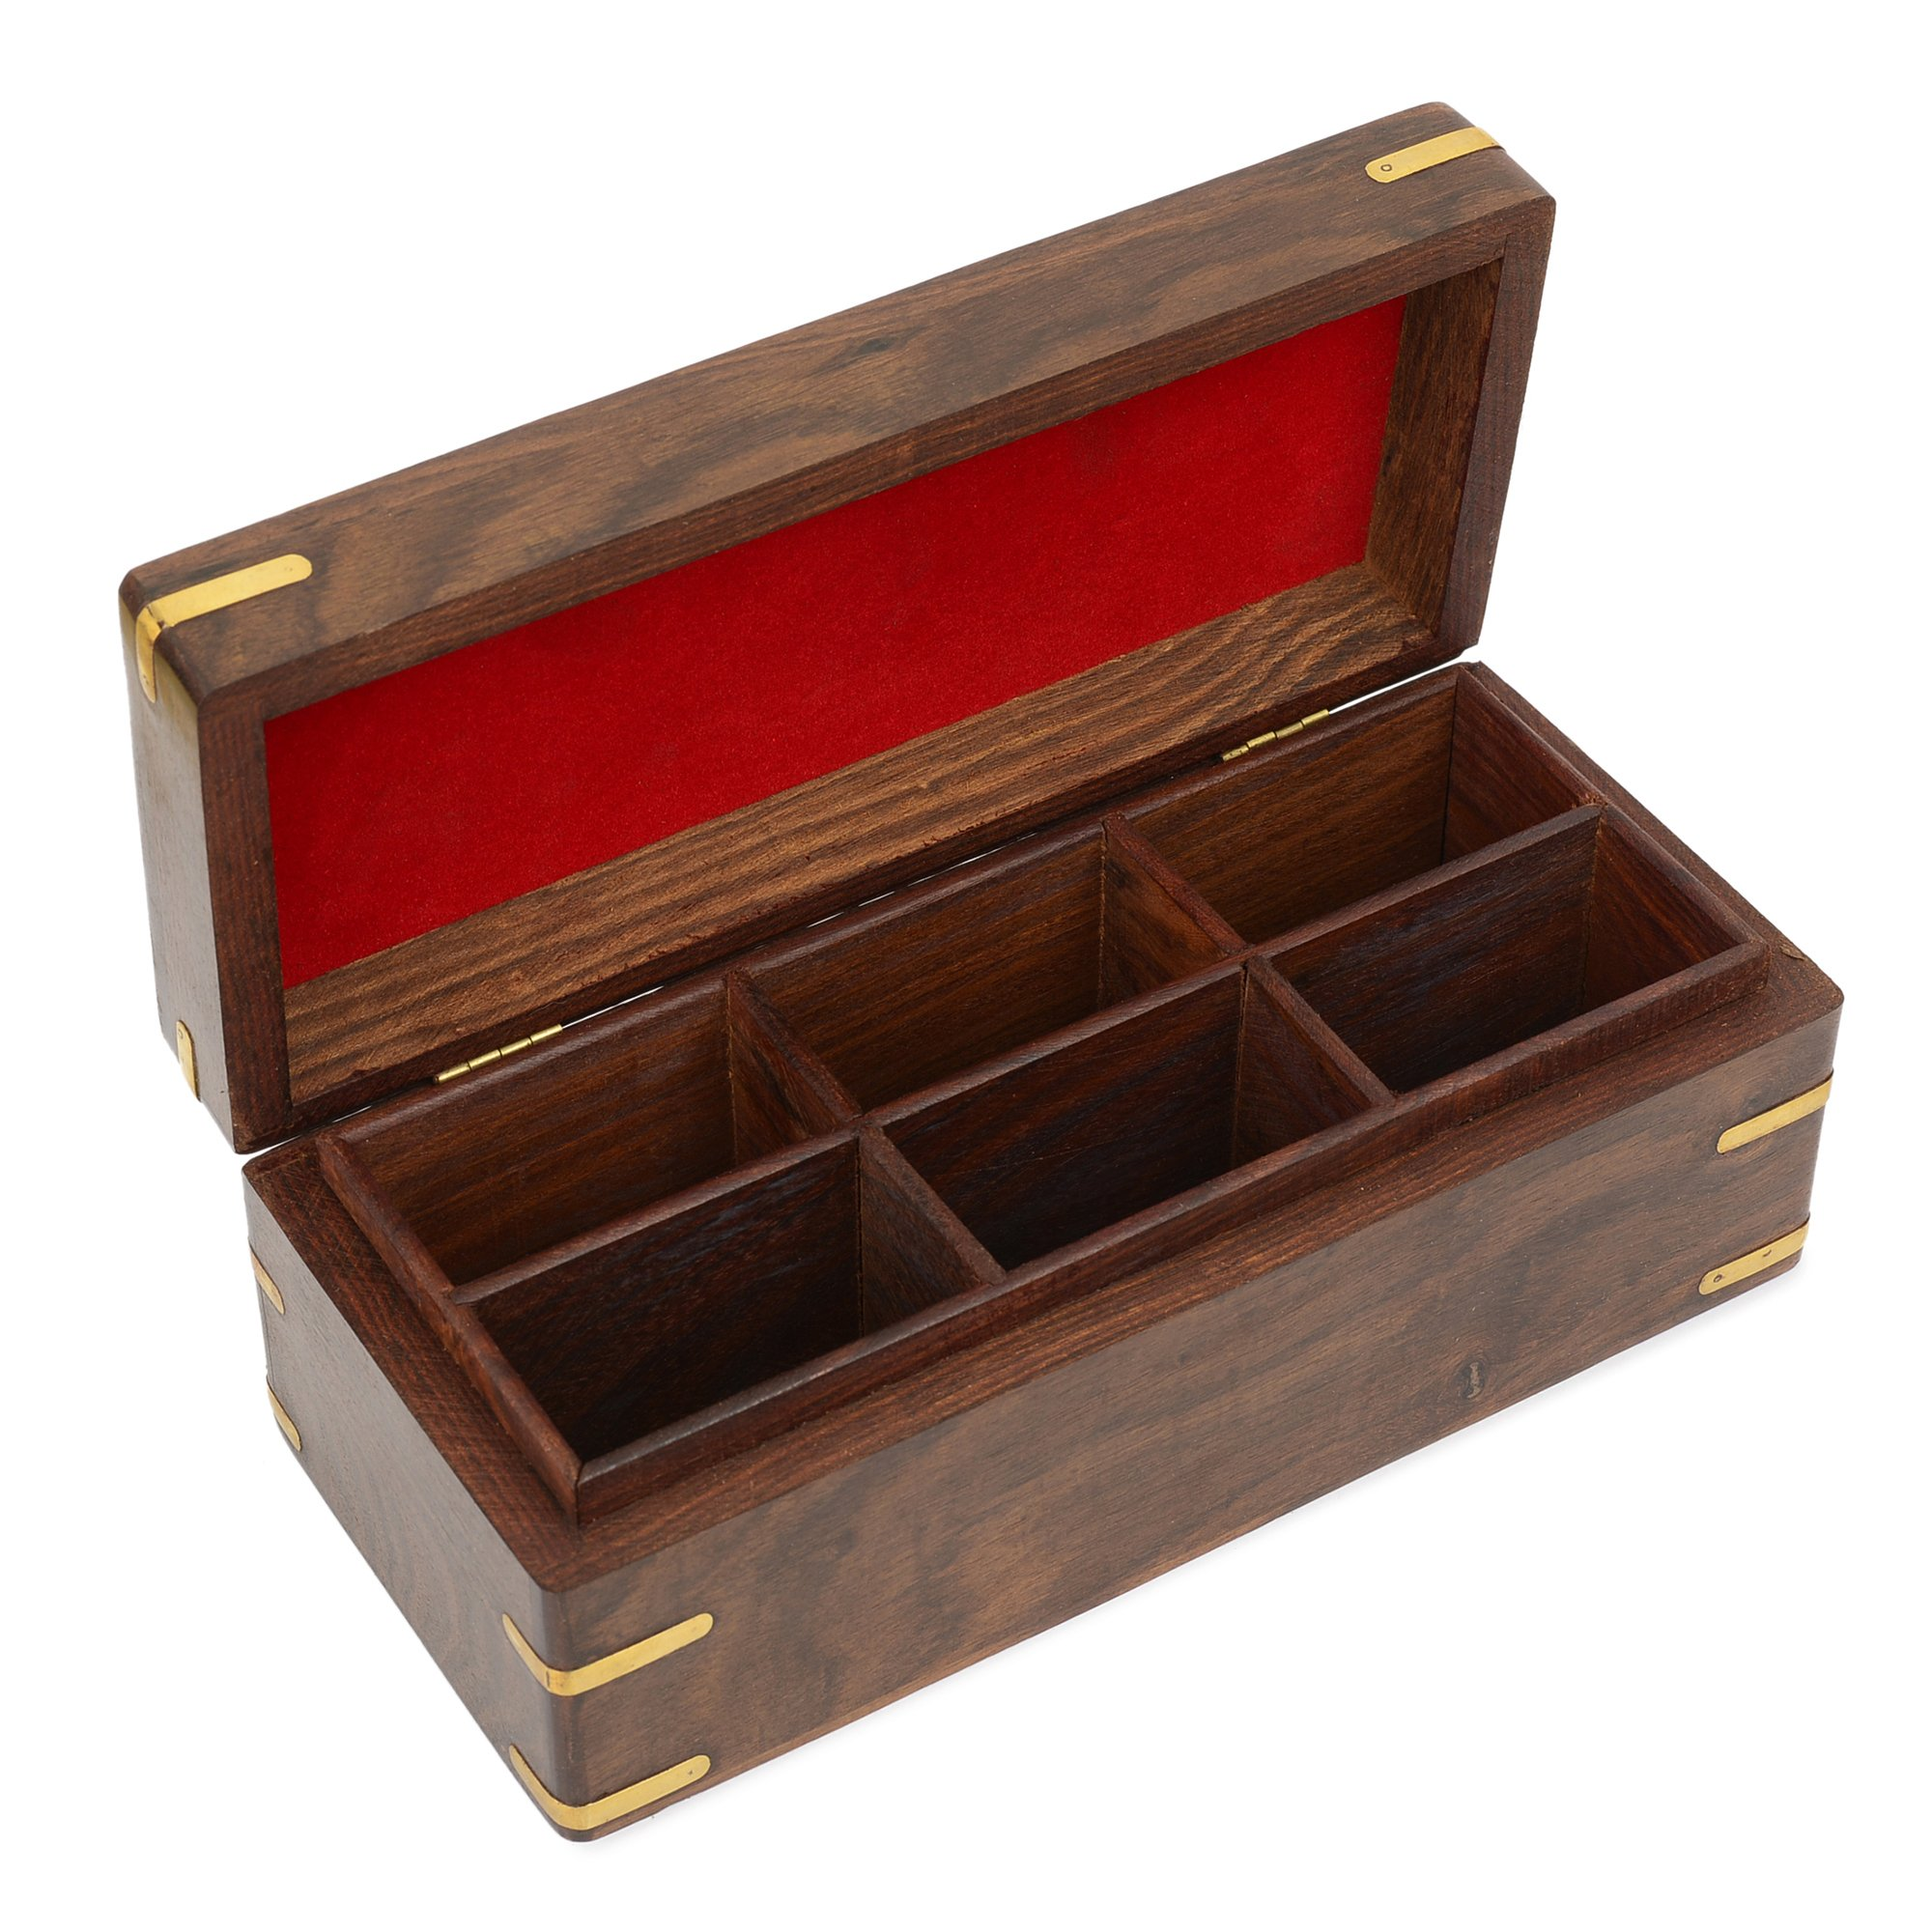 Rusticity Indian Traditional Handmade Wooden Tea, Herbs, Condiment & Spice Storage Box/Handcrafted Sheesham Keepsake Chest Organizer w/Lid & 6 compartment pockets for Kitchen & Dining, 10 x 4.5 in.